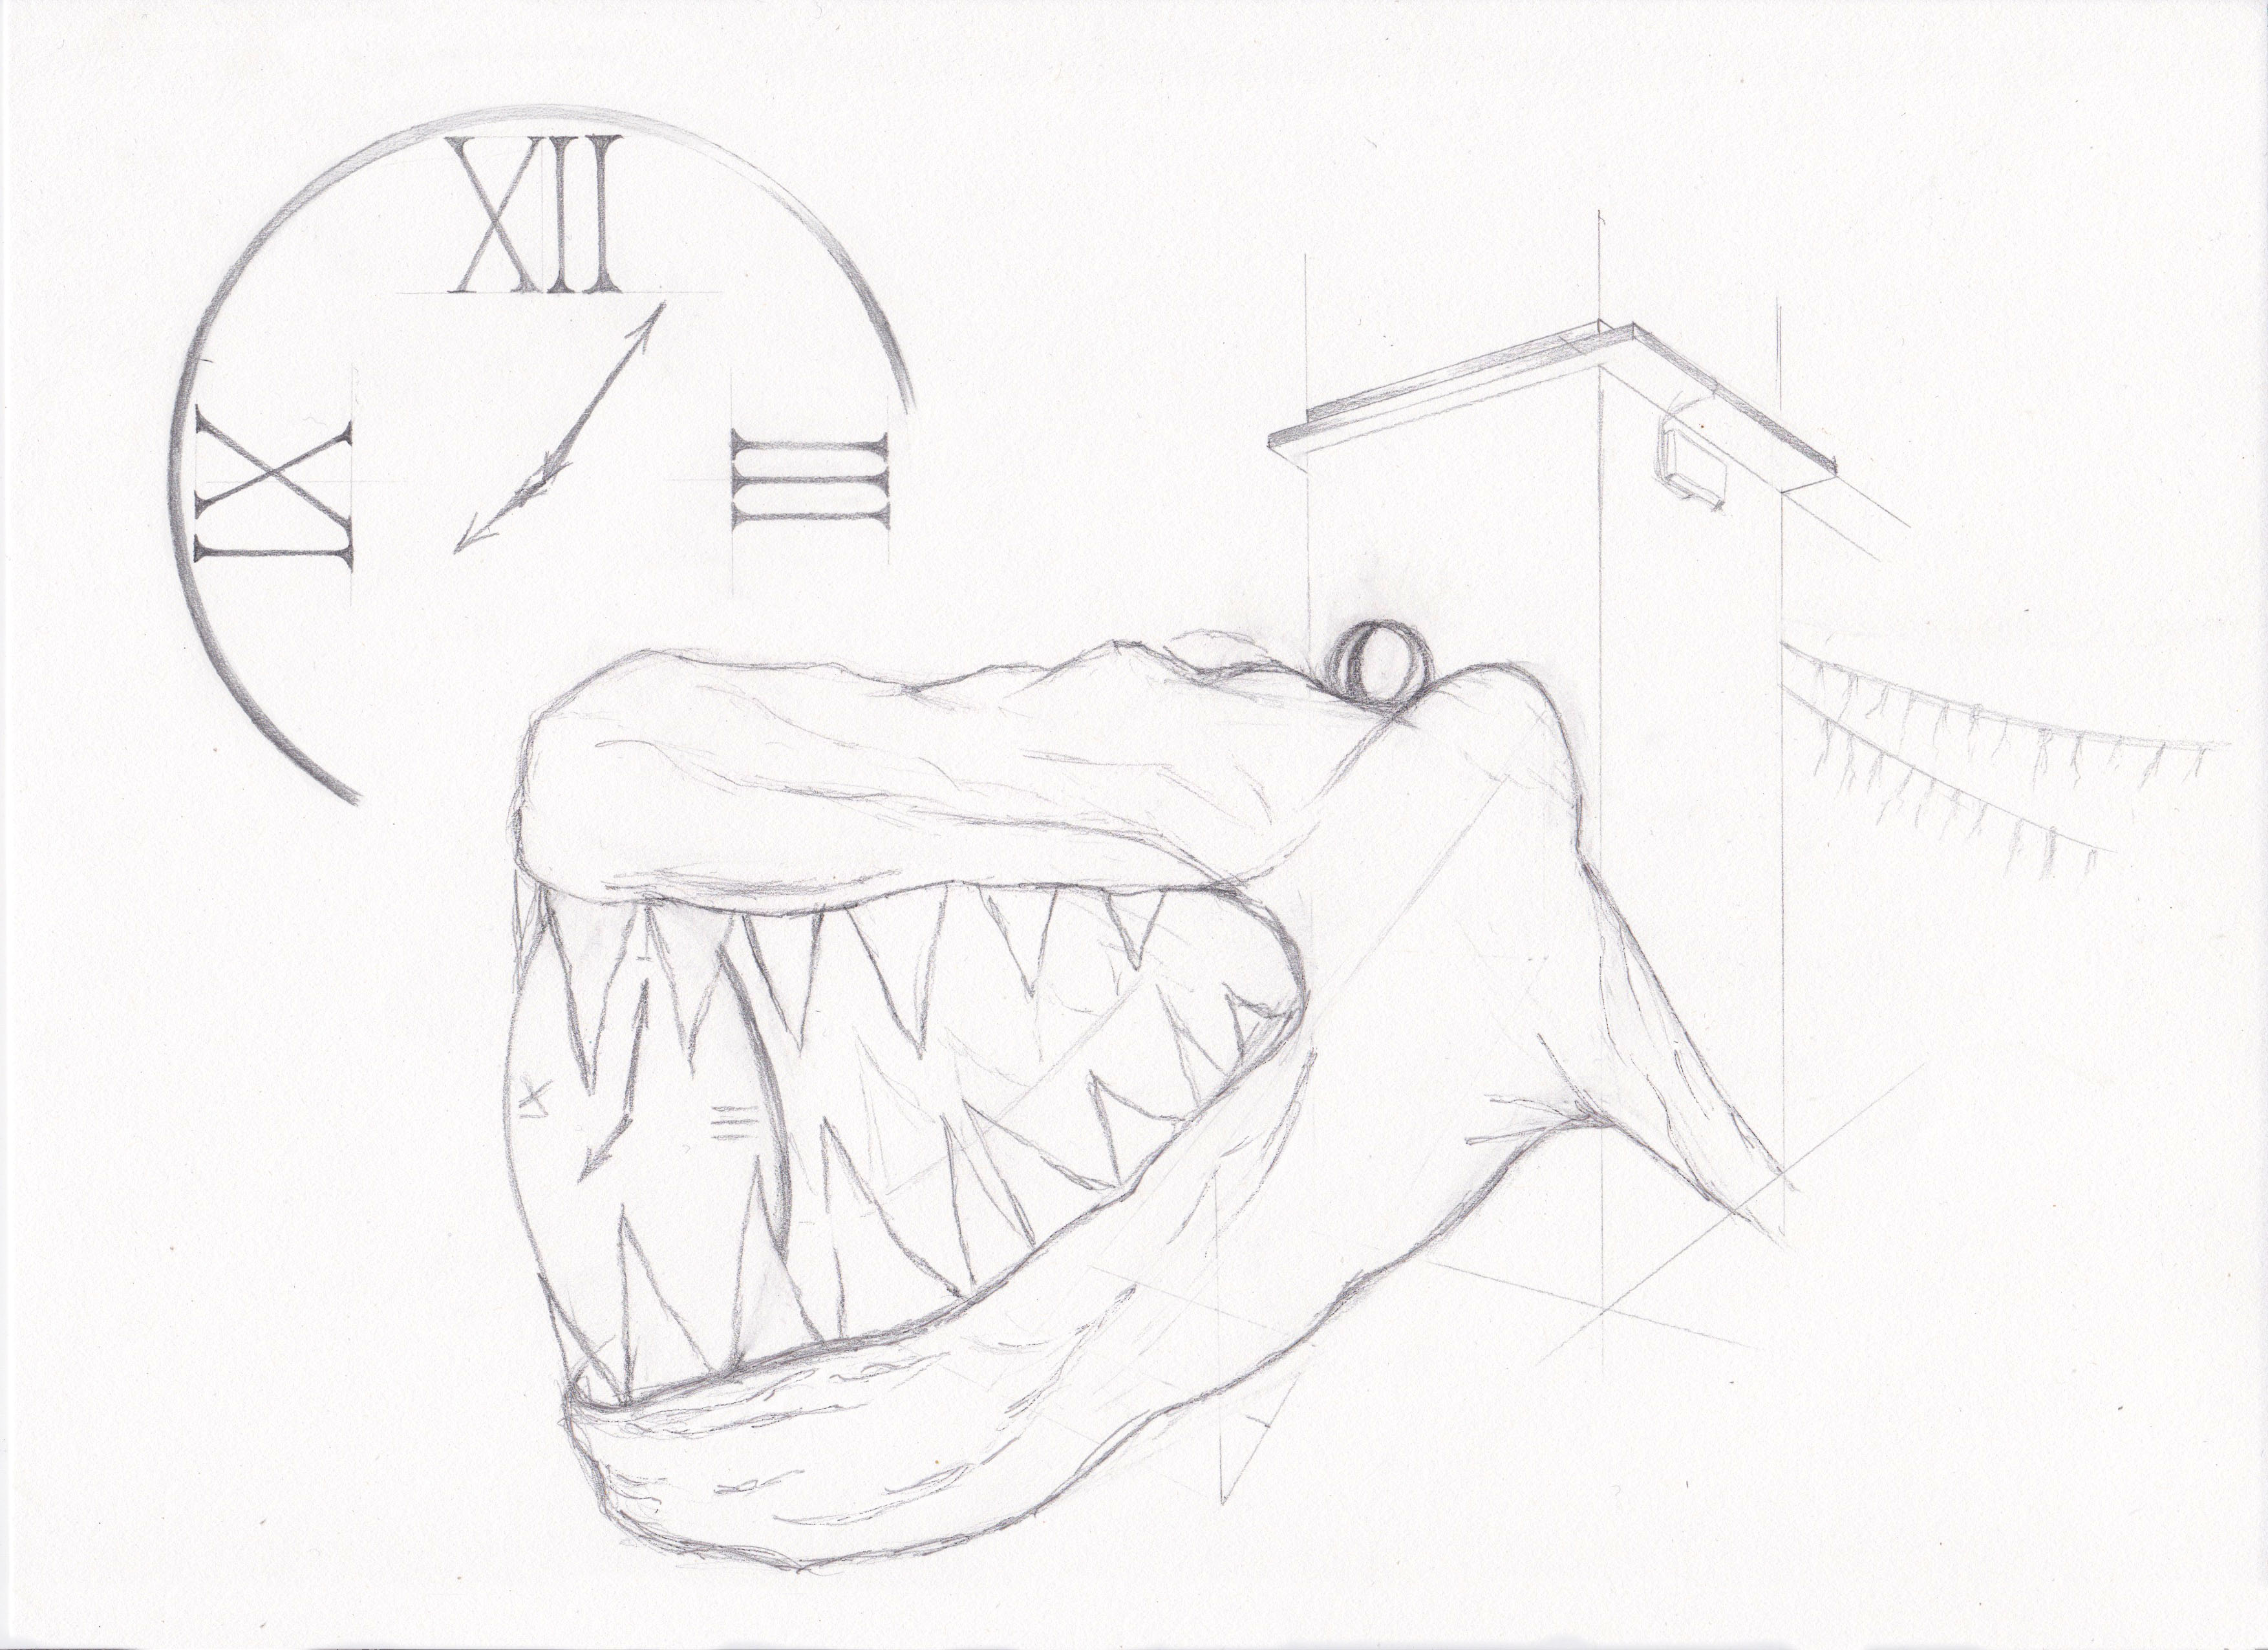 SKETCH OF THE CROCODILE